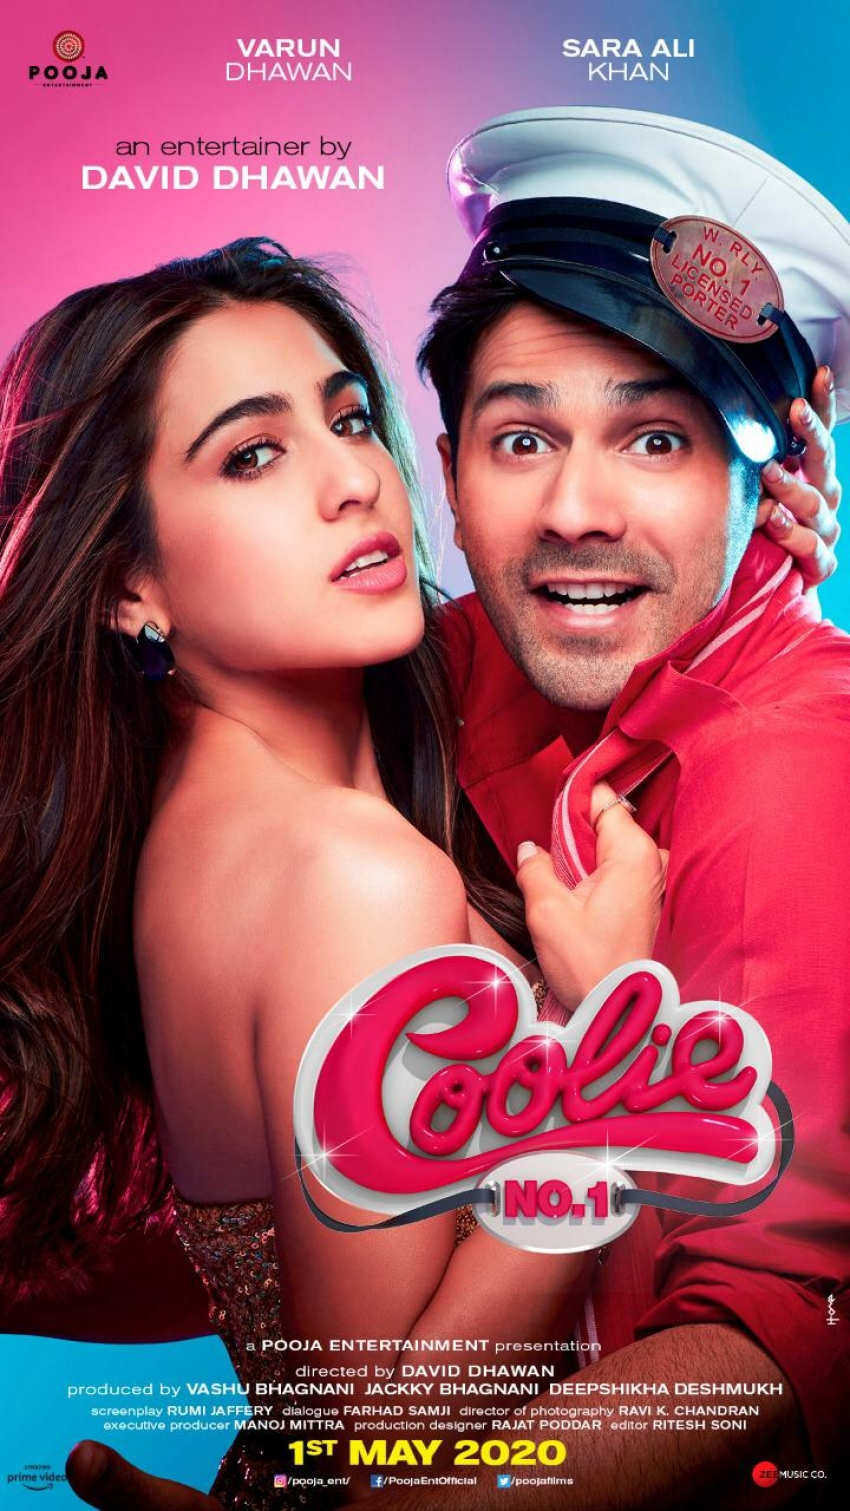 Coolie No. 1 1080p/720p AMZN WEB-DL DDP5.1 H.264 – KamiKaze – Telly | 9 GB | 5 GB | 2 GB |